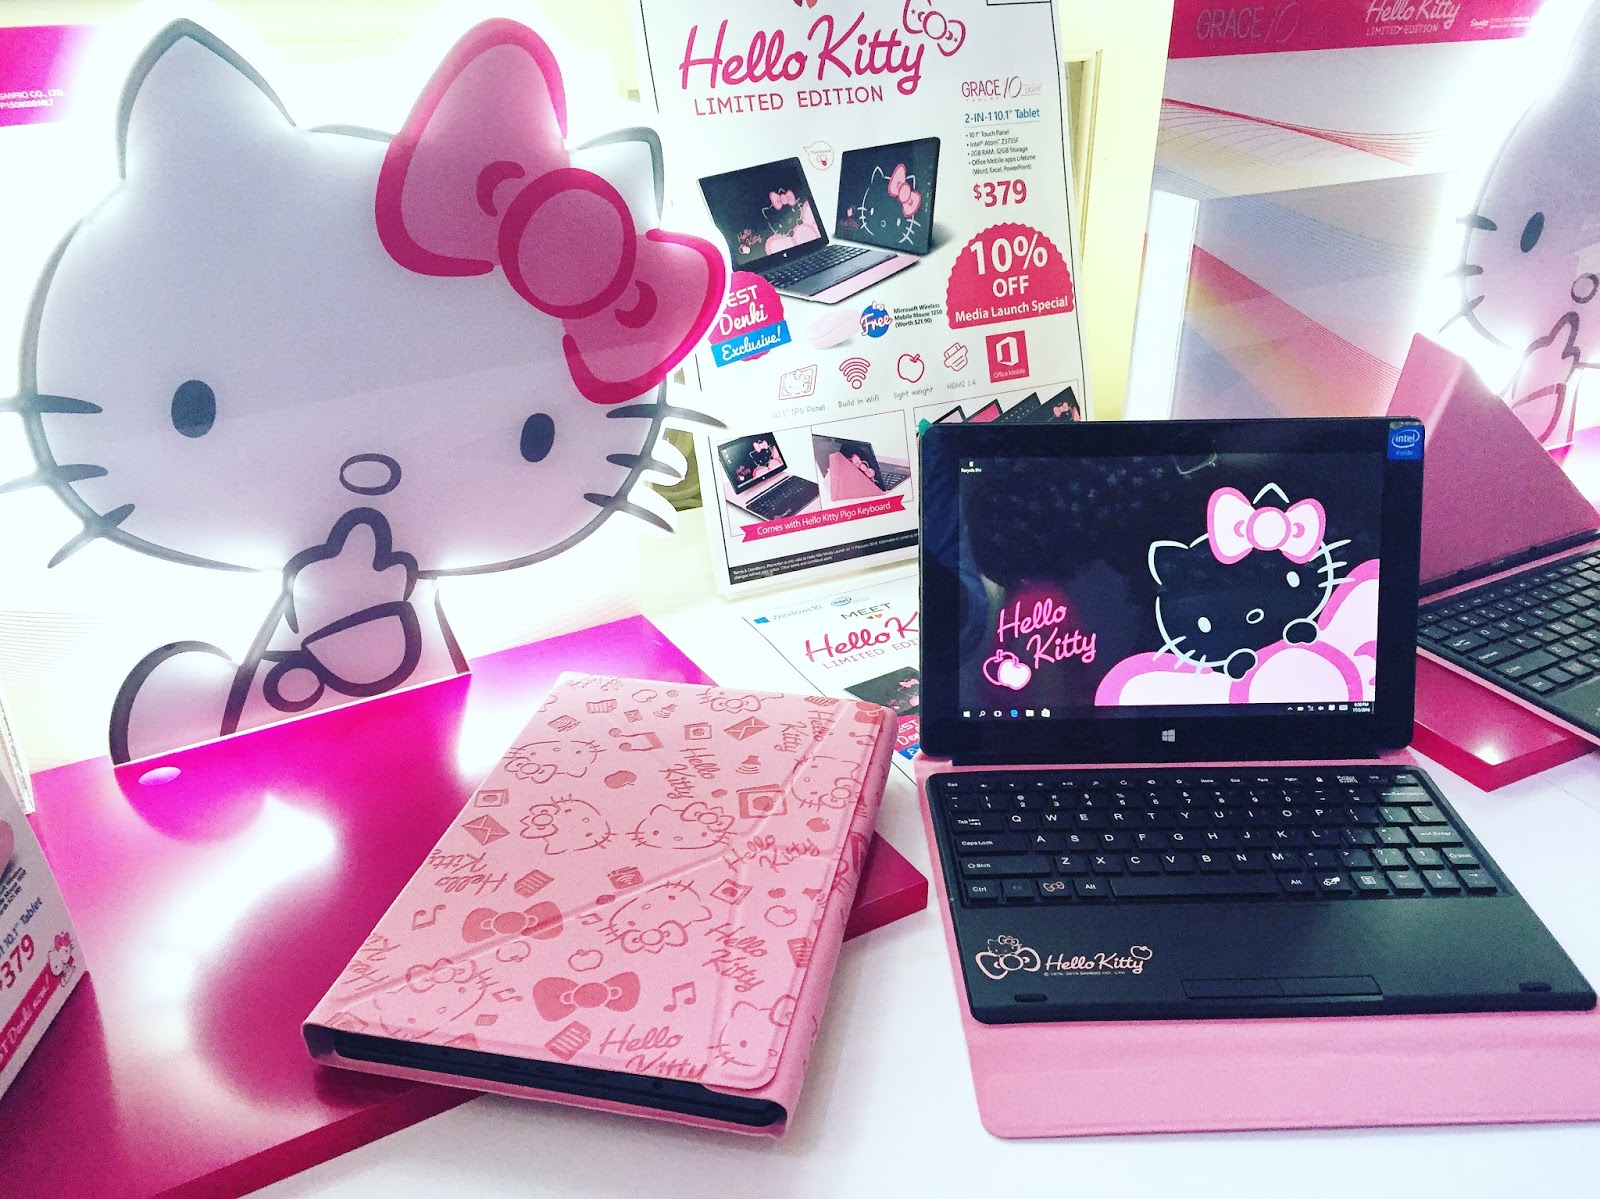 2f60356df To all Hello Kitty Fans, the Grace 10 Light Hello Kitty Limited Edition  Windows 10 tablet is here! The Grace 10 Light is the first Sanrio-themed  2-in-1 ...